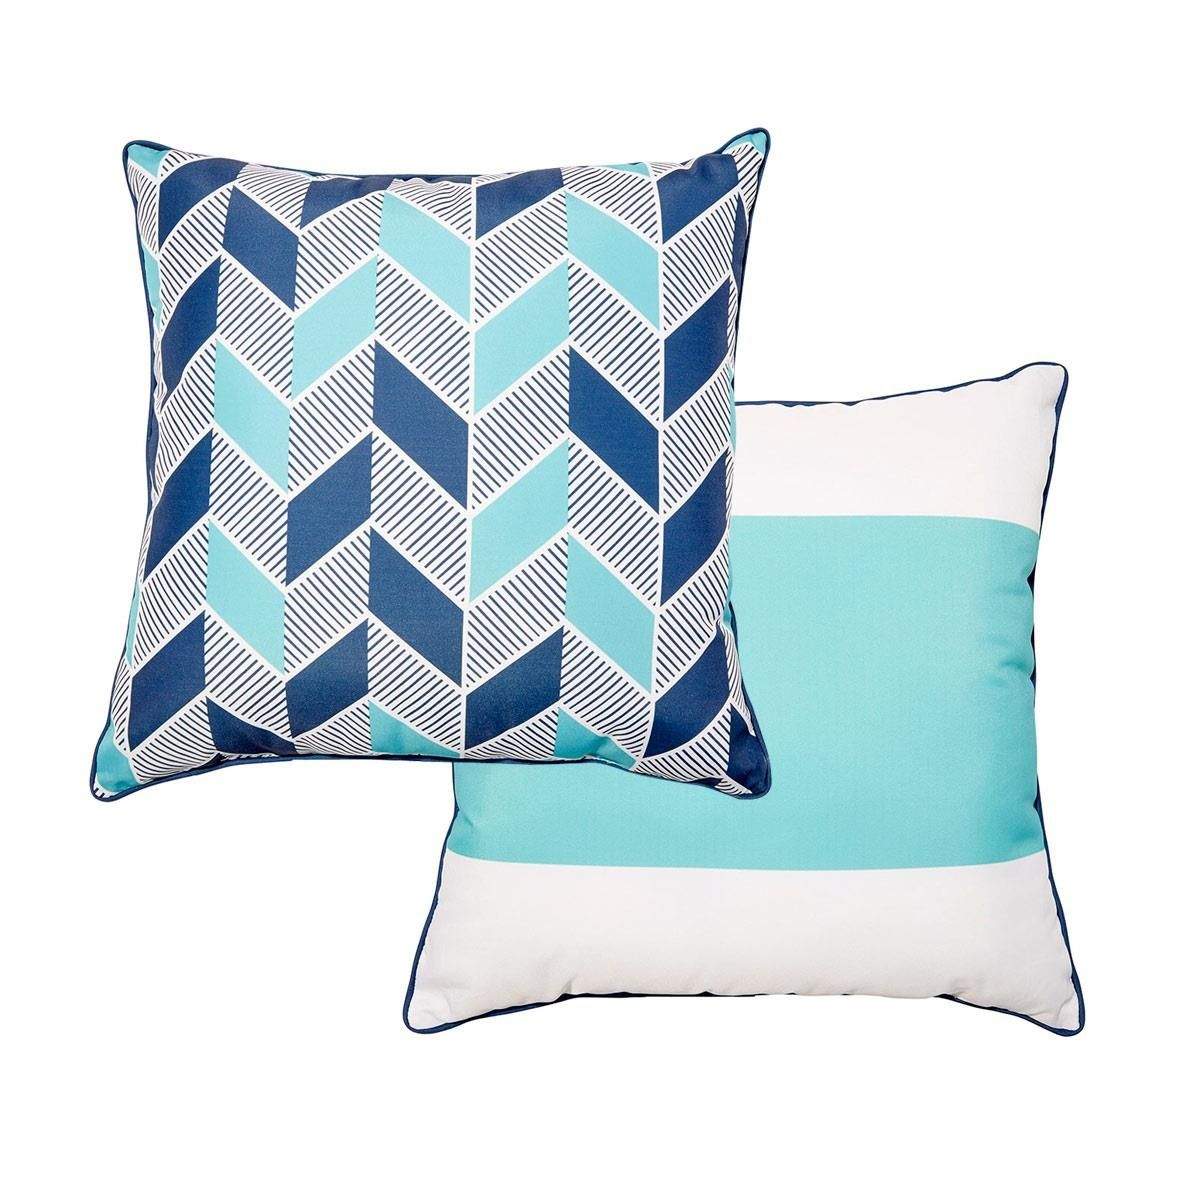 Reversible 50cm Outdoor Cushion Cove Kmart Outdoor